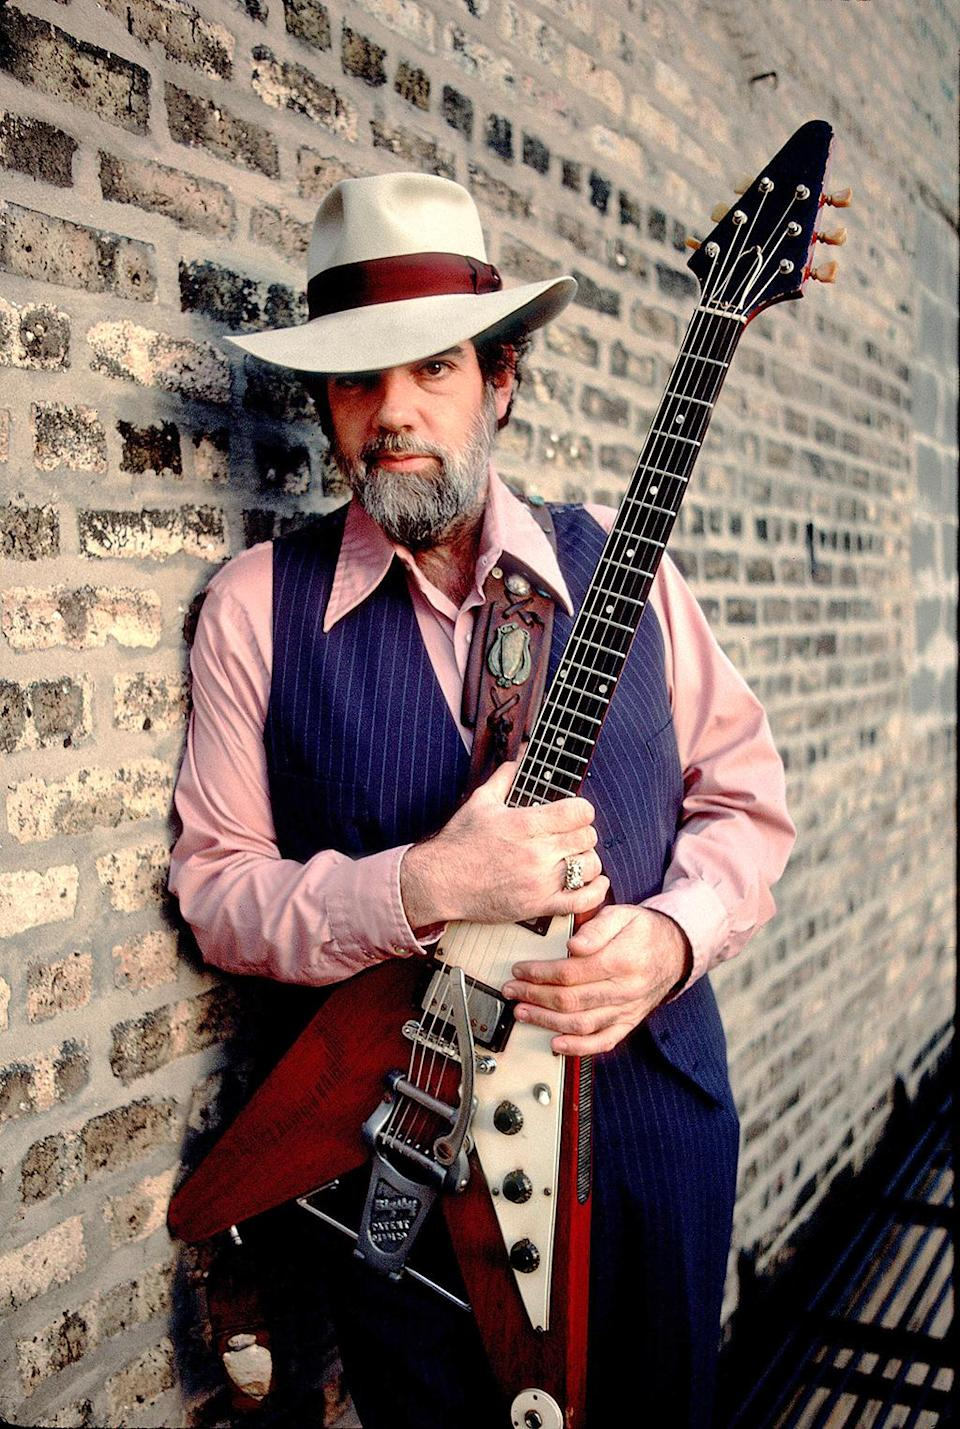 Lonnie Mack was an American blues/country singer and pioneering, influential guitarist. He died of natural causes on April 21 at age 74. (Photo: Getty Images)